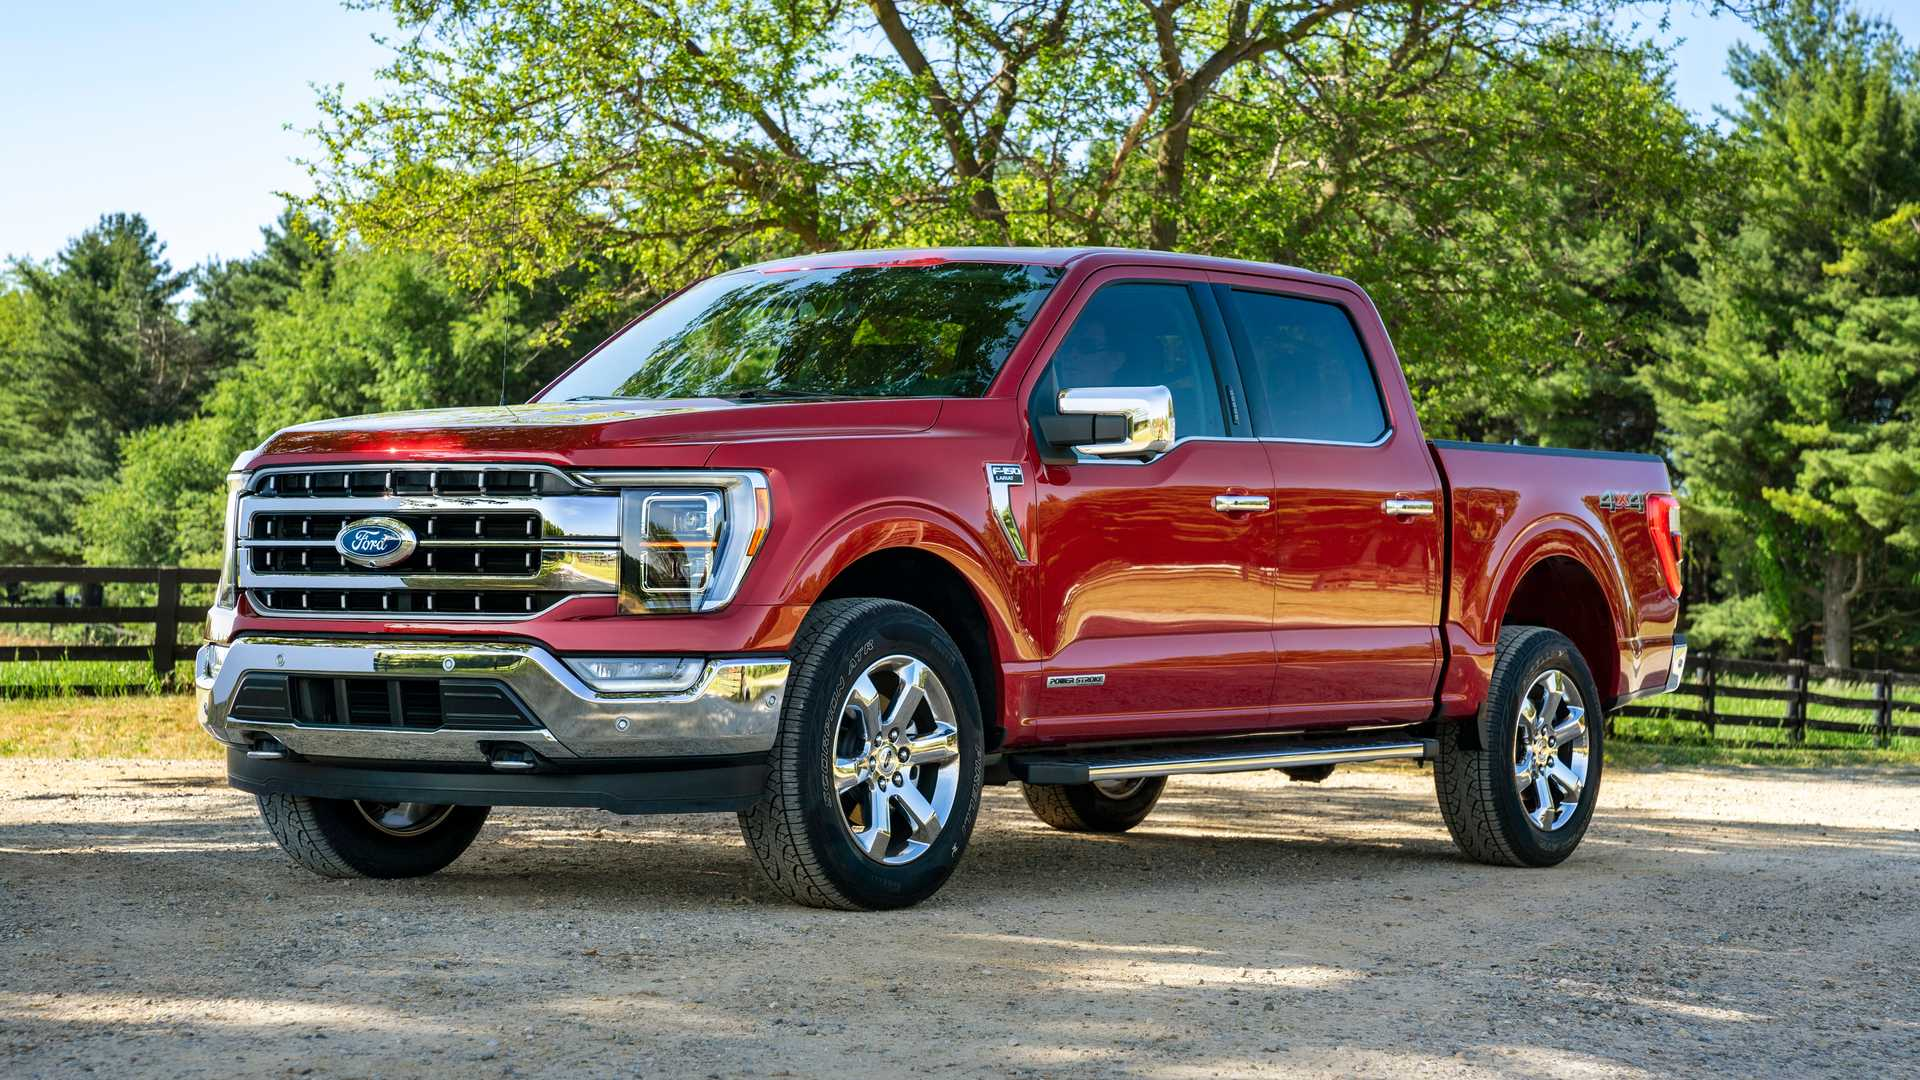 2021 Ford F 150 Engines Detailed Hybrid Rated At 430 HP And 570 LB FT 1920x1080